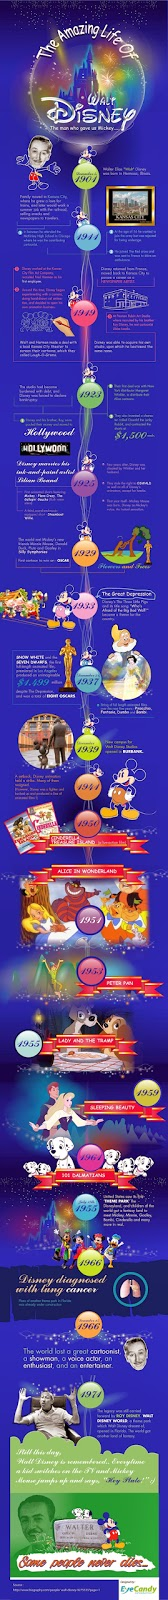 http://visual.ly/amazing-life-walt-disney?_from=homepage